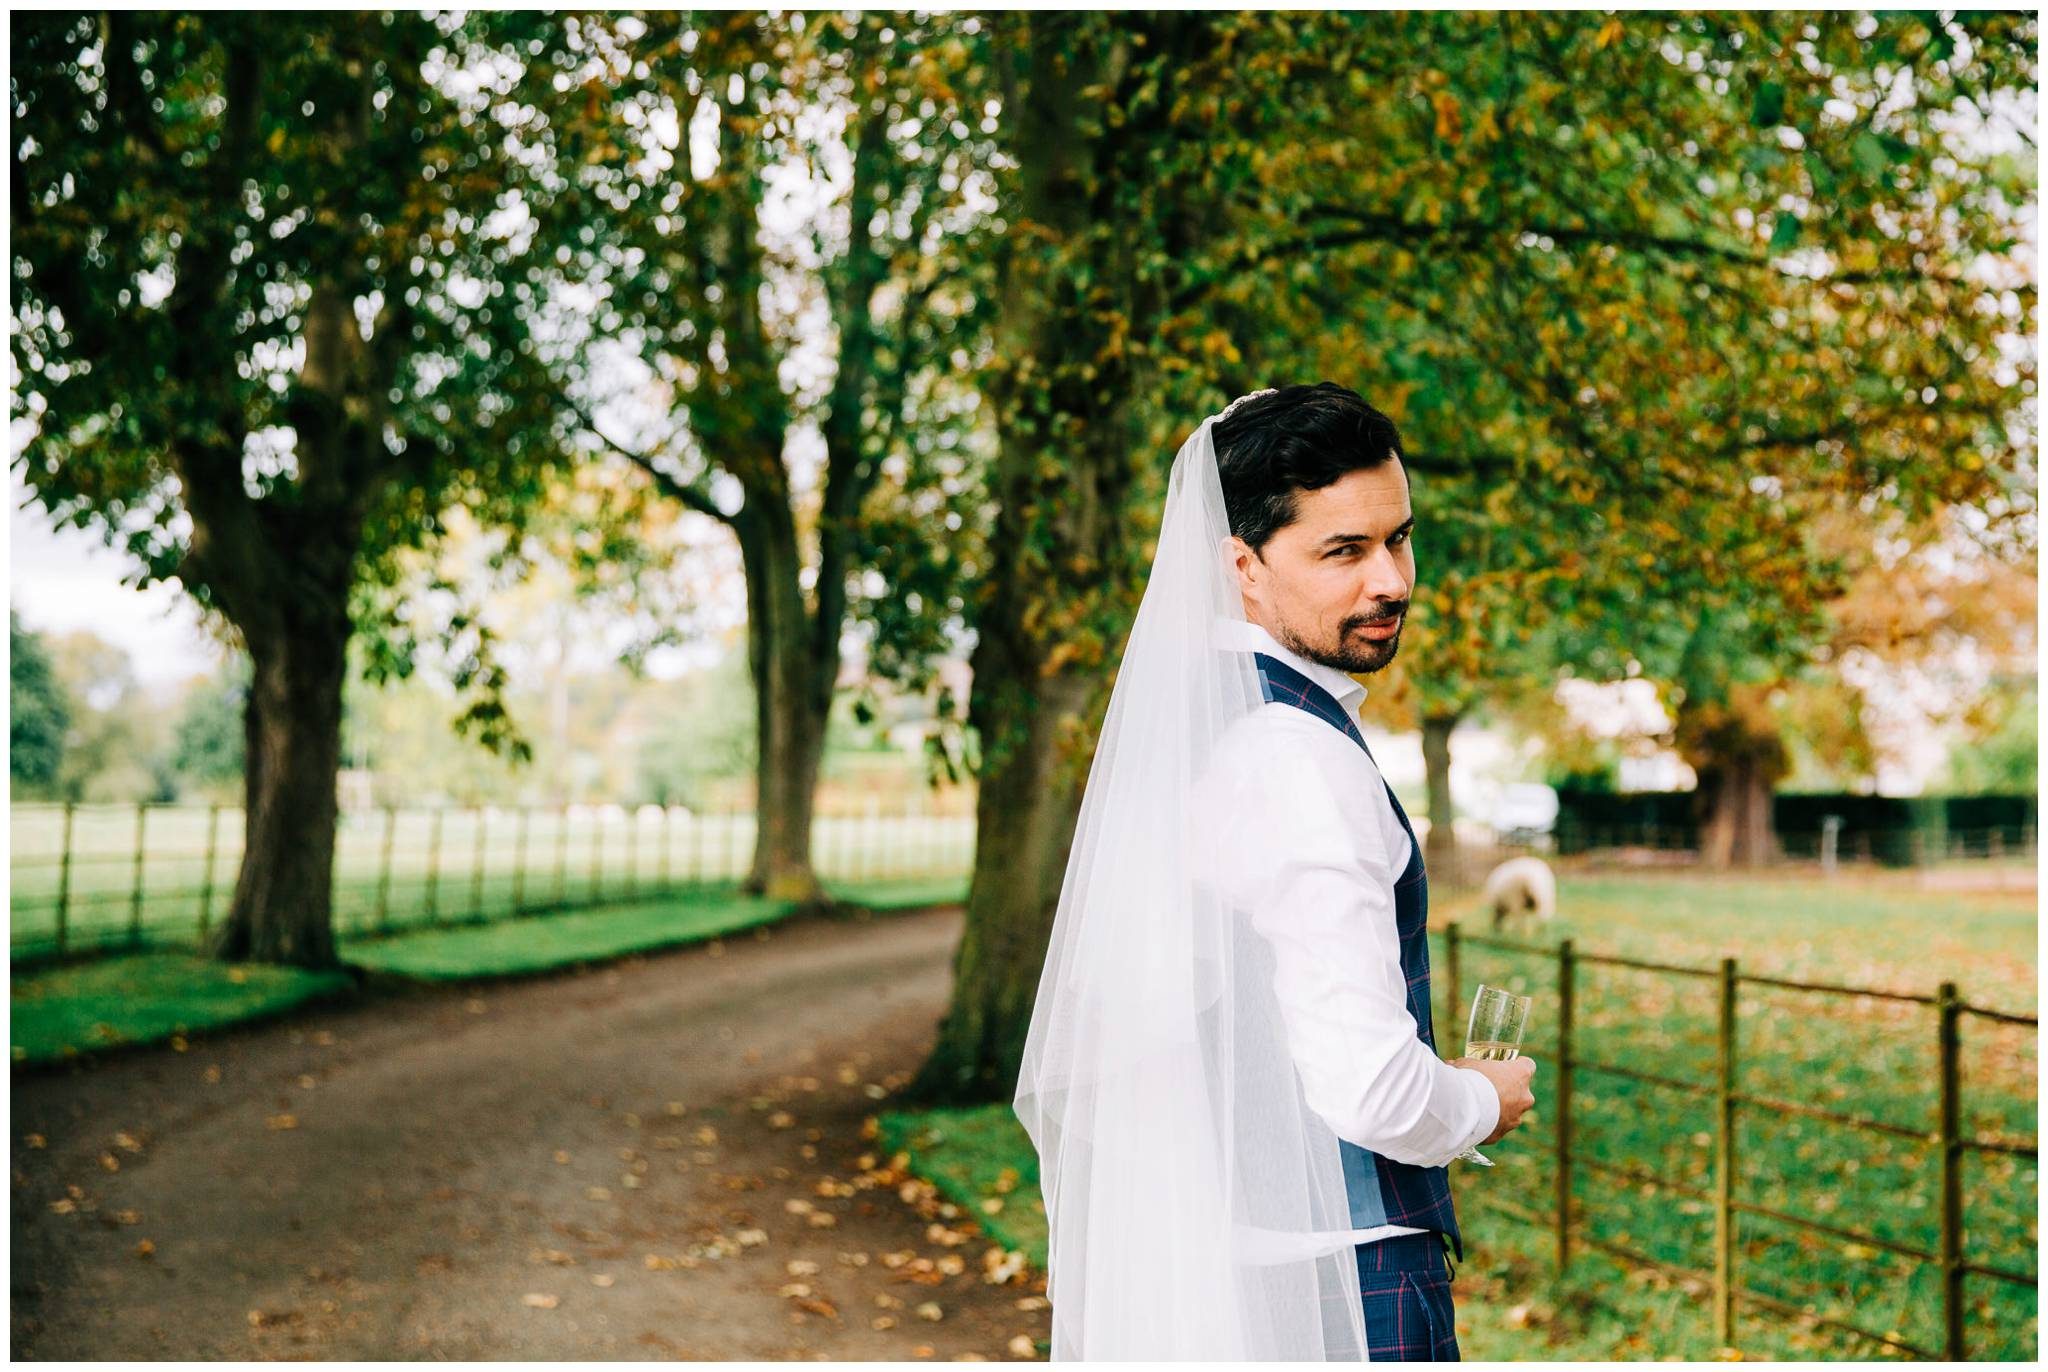 Natural wedding photography Manchester - Clare Robinson Photography_0320.jpg